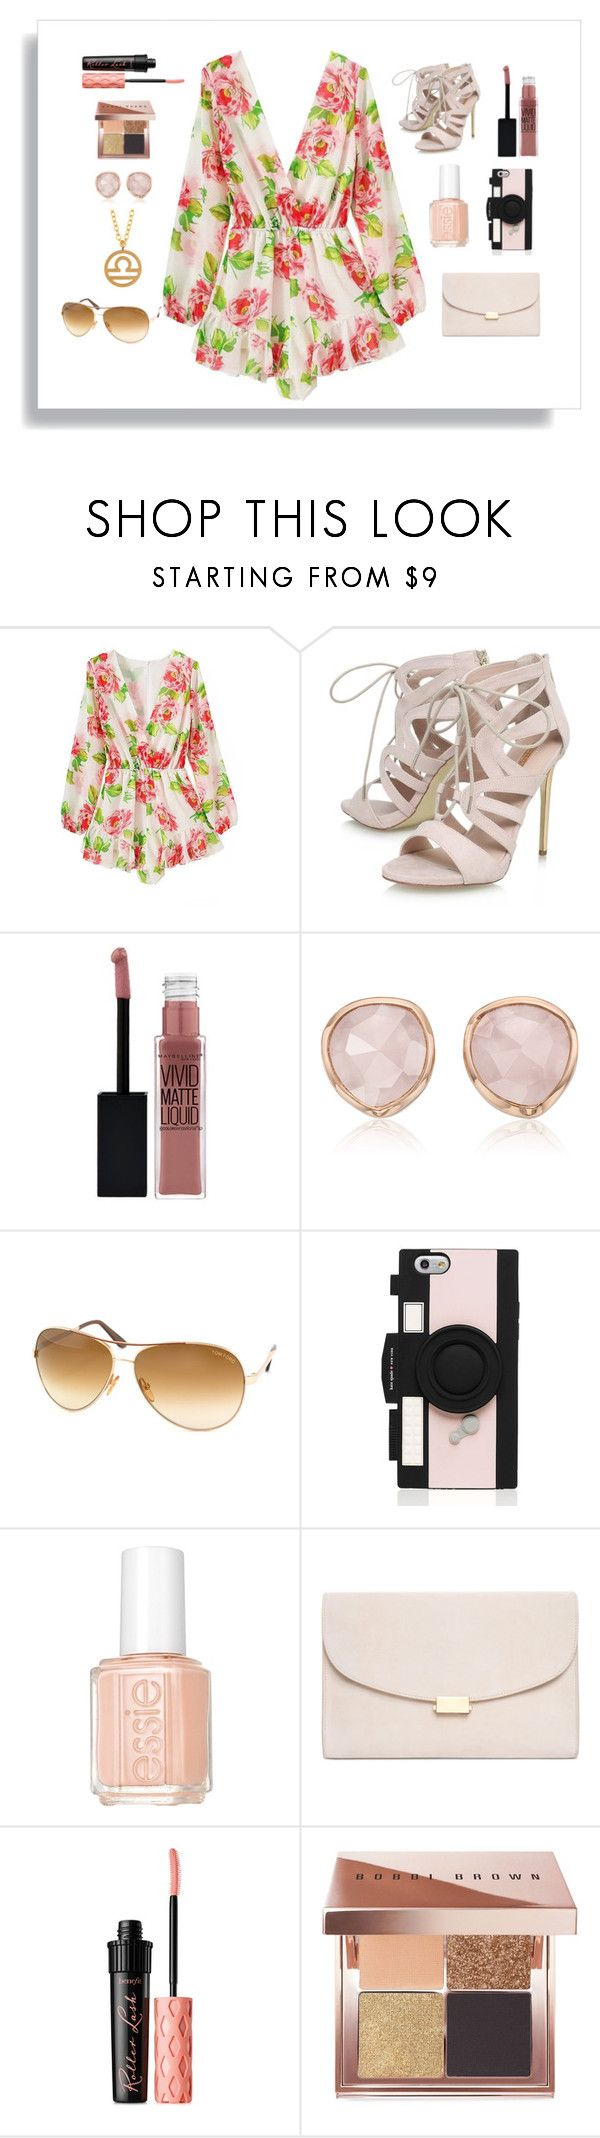 """Libra Birthday Outfit"" by janisan0310 ❤ liked on Polyvore featuring Carvela, Maybelline, Monica Vinader, Tom Ford, Kate Spade, Essie, Mansur Gavriel, Benefit, Bobbi Brown Cosmetics and Kris Nations"